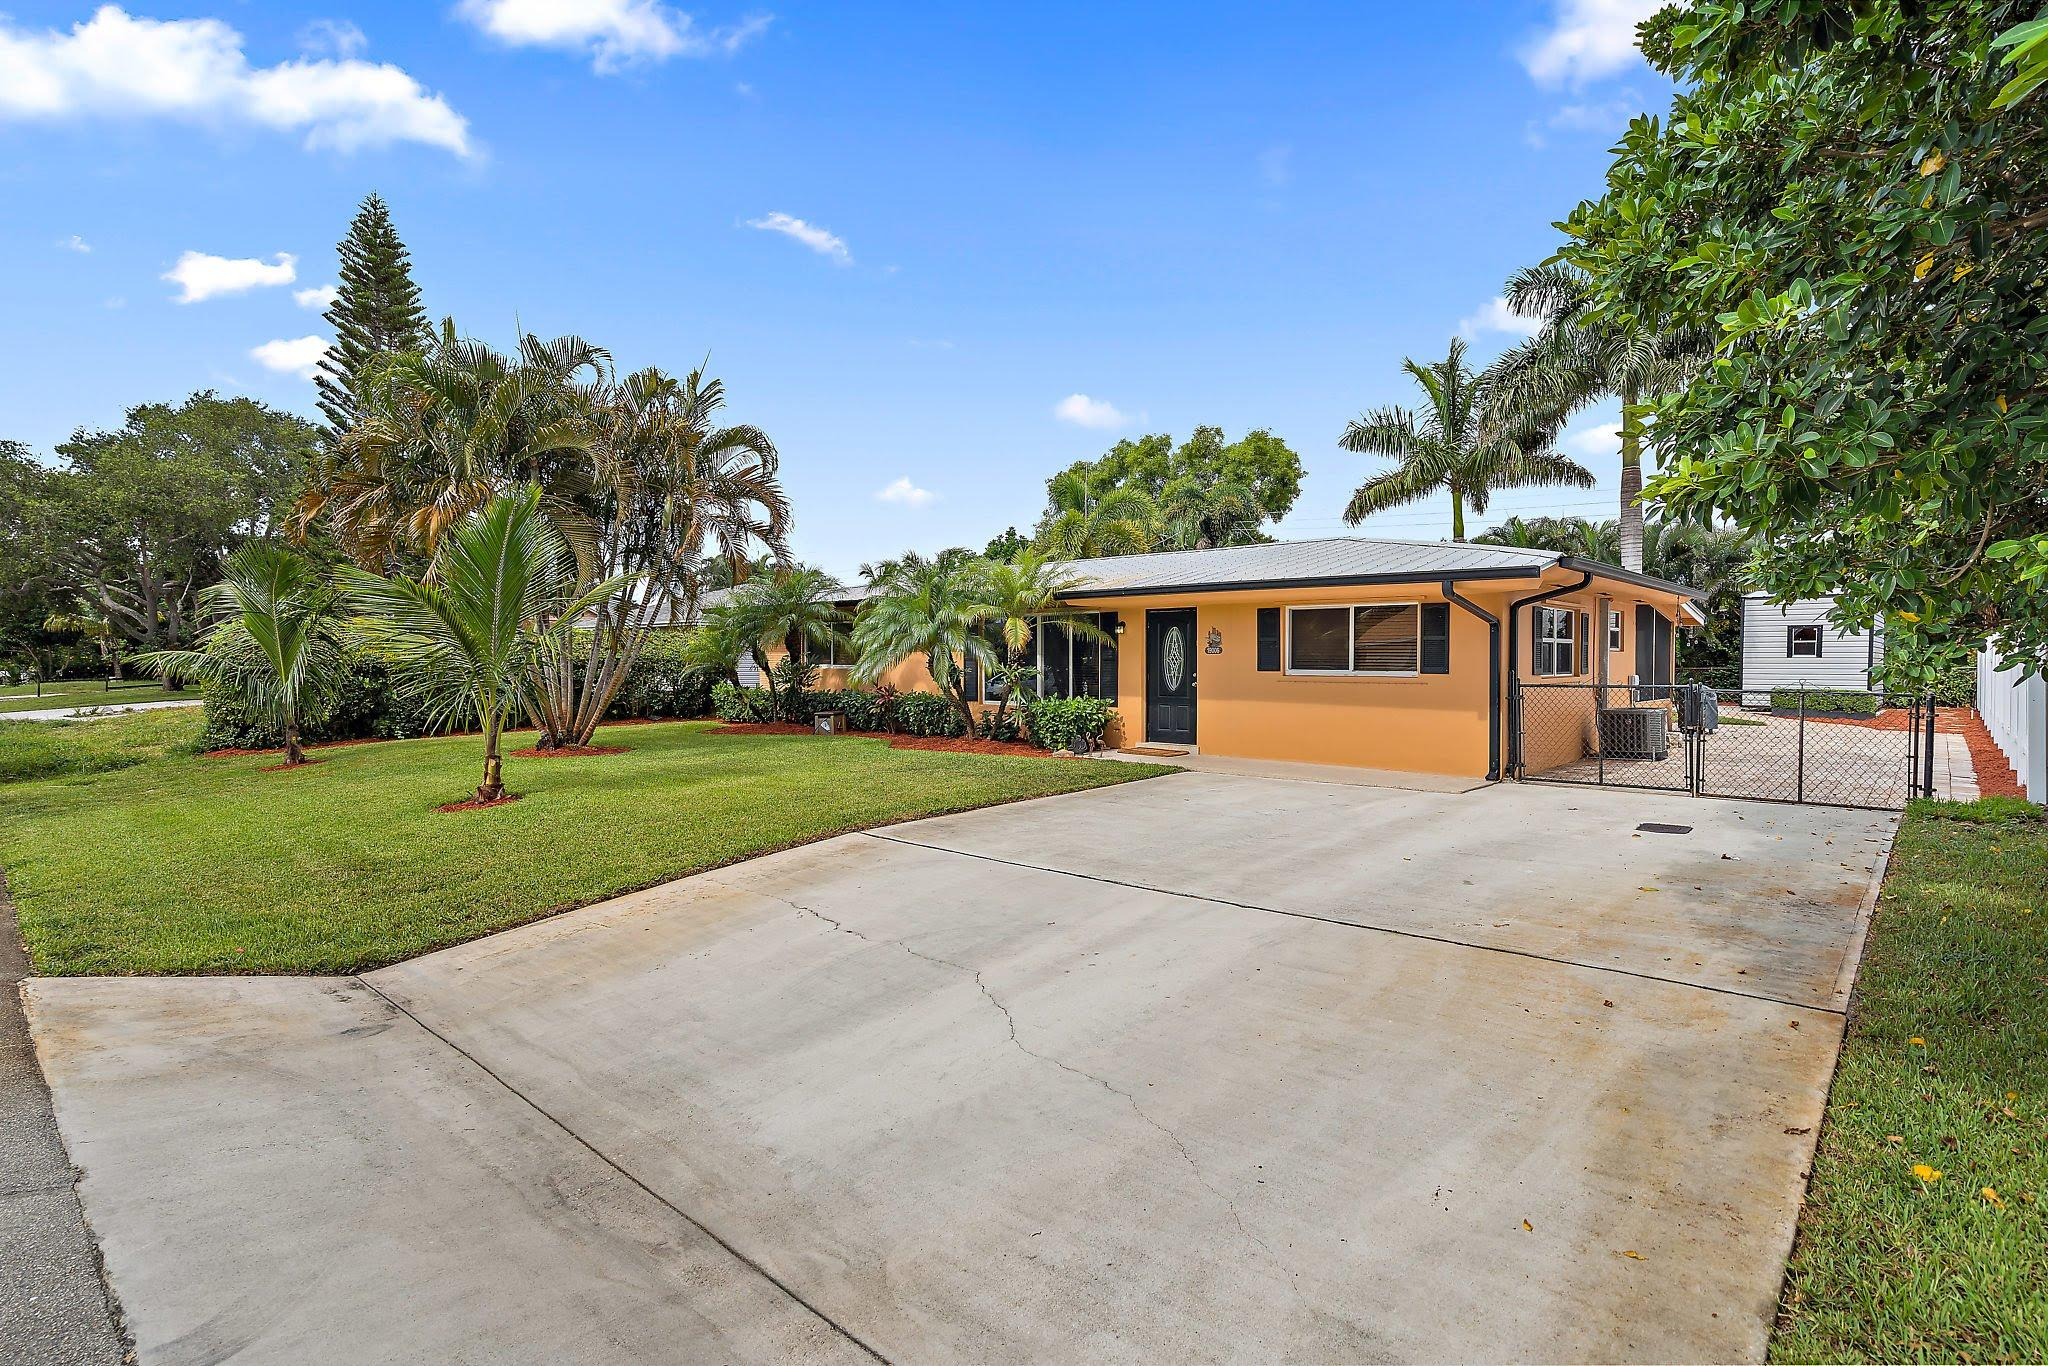 New Home for sale at 19006 Mayo Drive in Tequesta